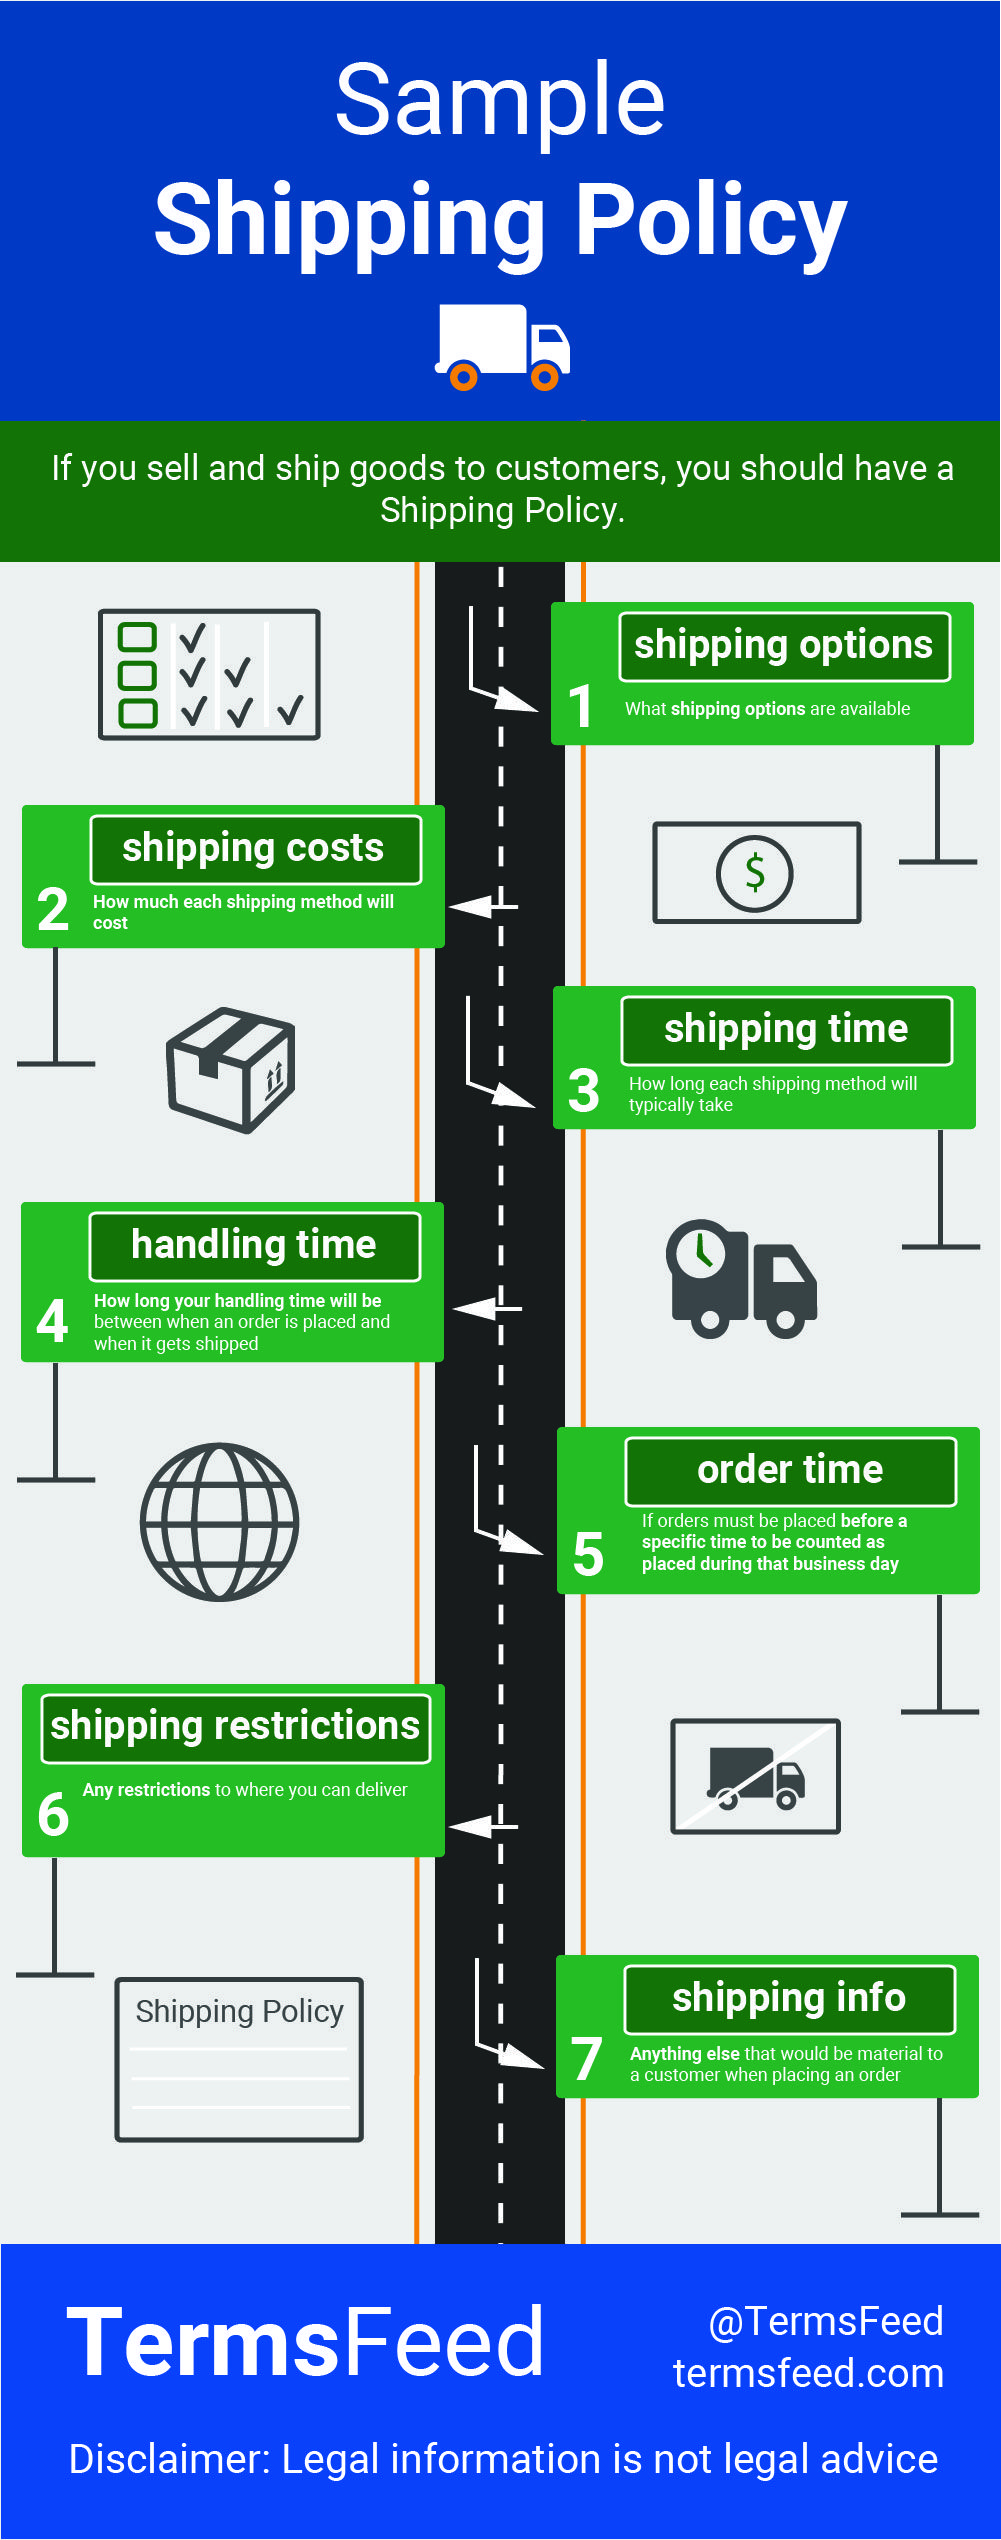 Sample Shipping Policy Template Ecommerce Pinterest Mobile App